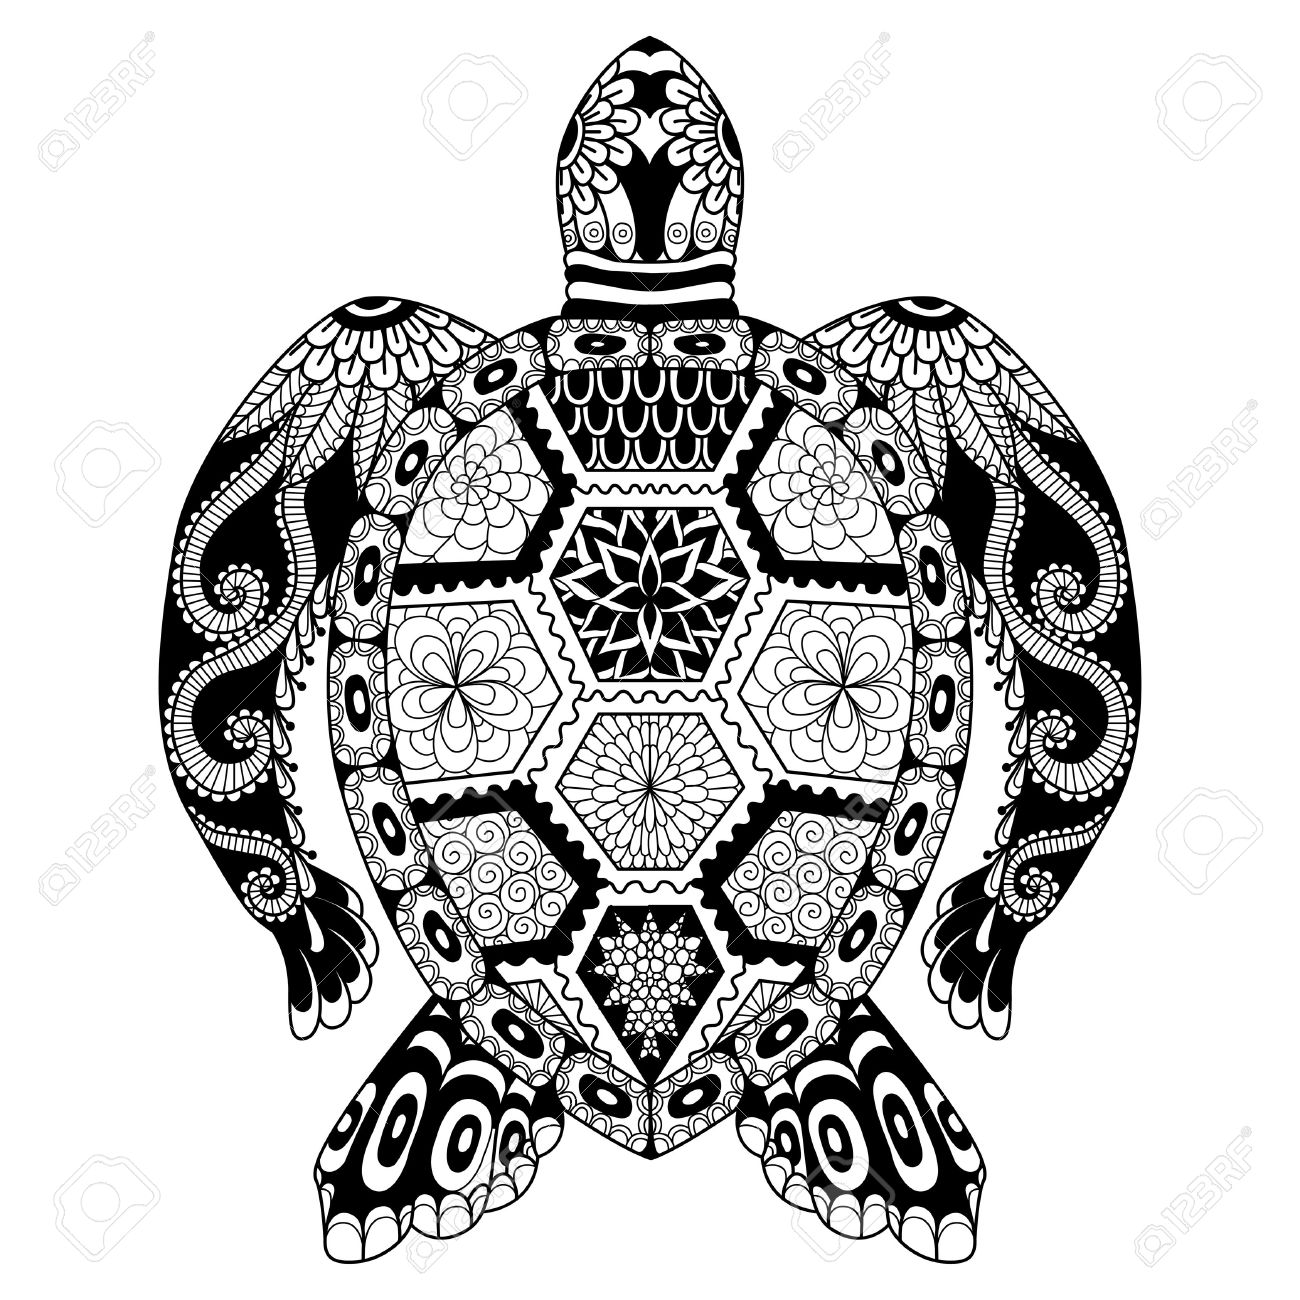 logo turtle images u0026 stock pictures royalty free logo turtle